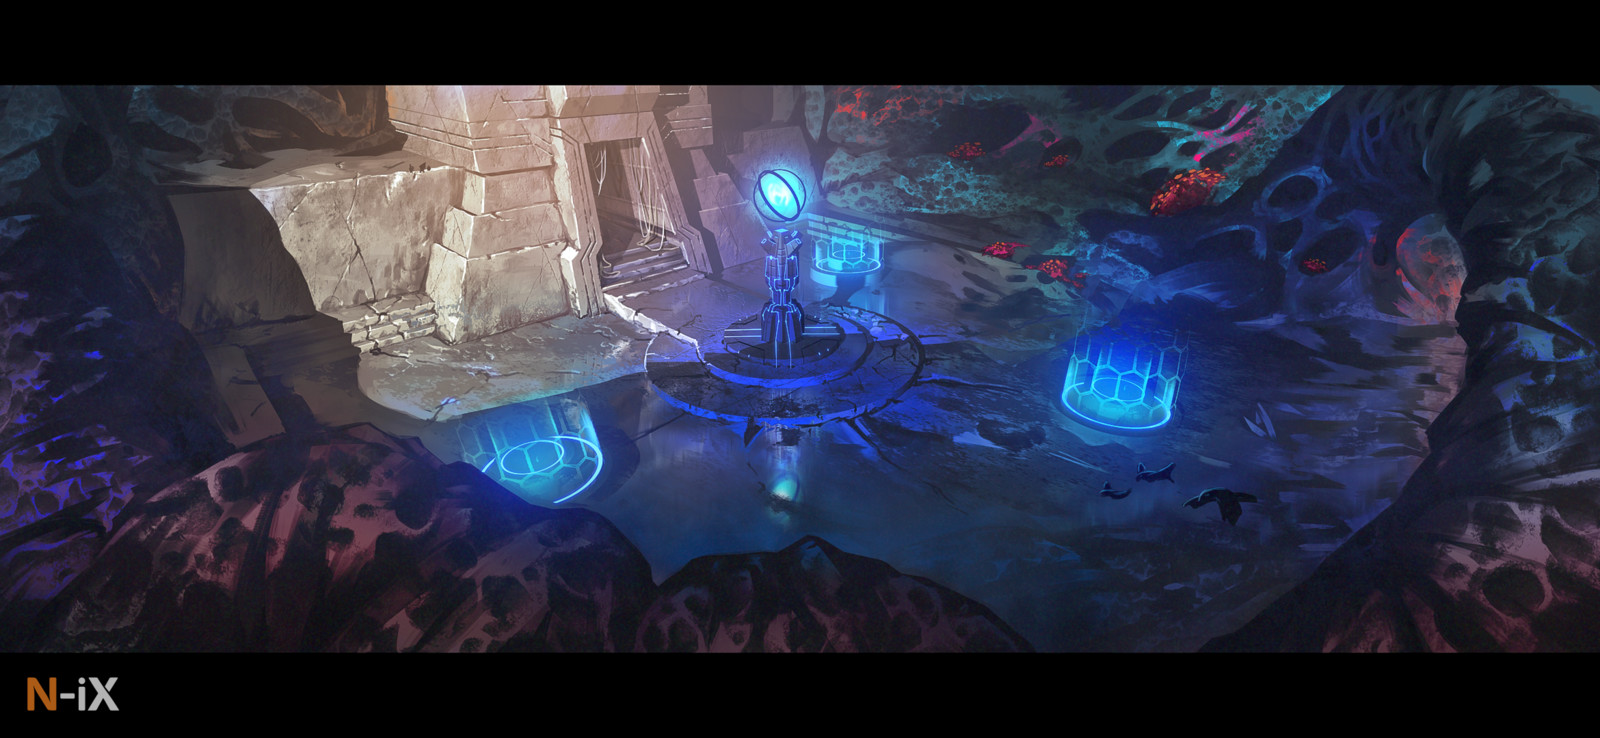 Otherworldly environment concept